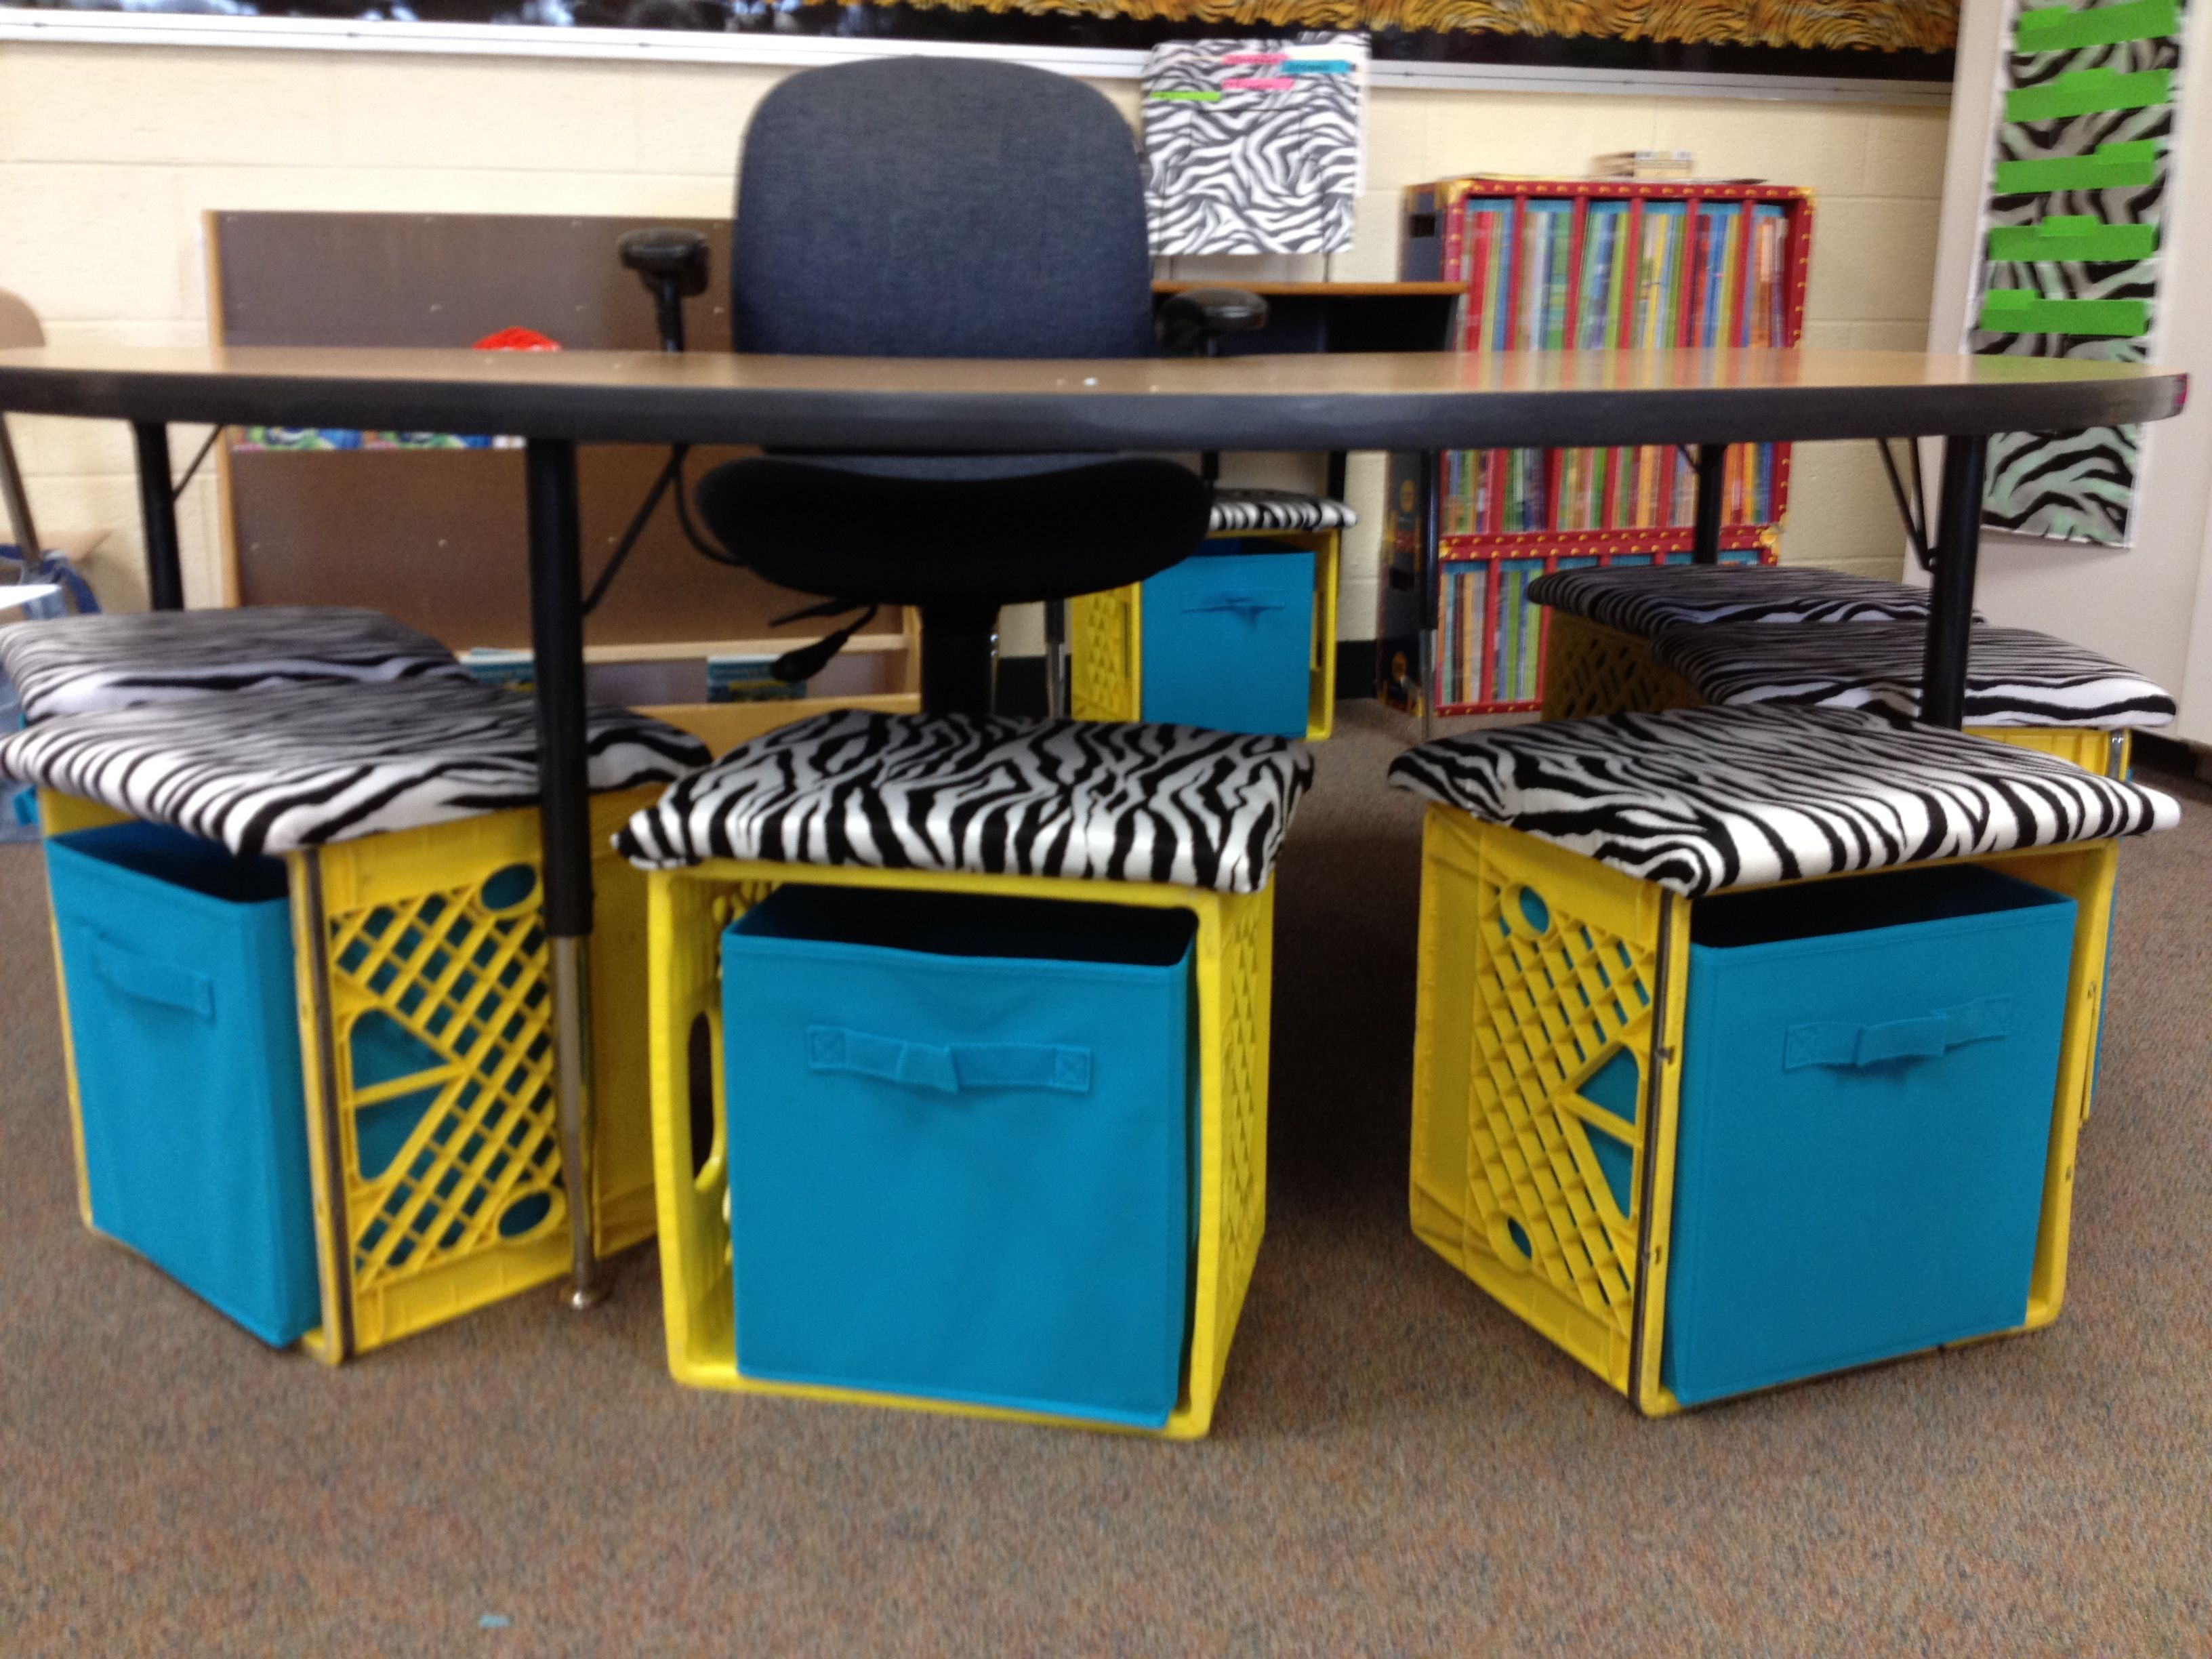 Pin By Kendra Johnson On Do It Yourself Crate Seats Milk Crate Seats Milk Crates